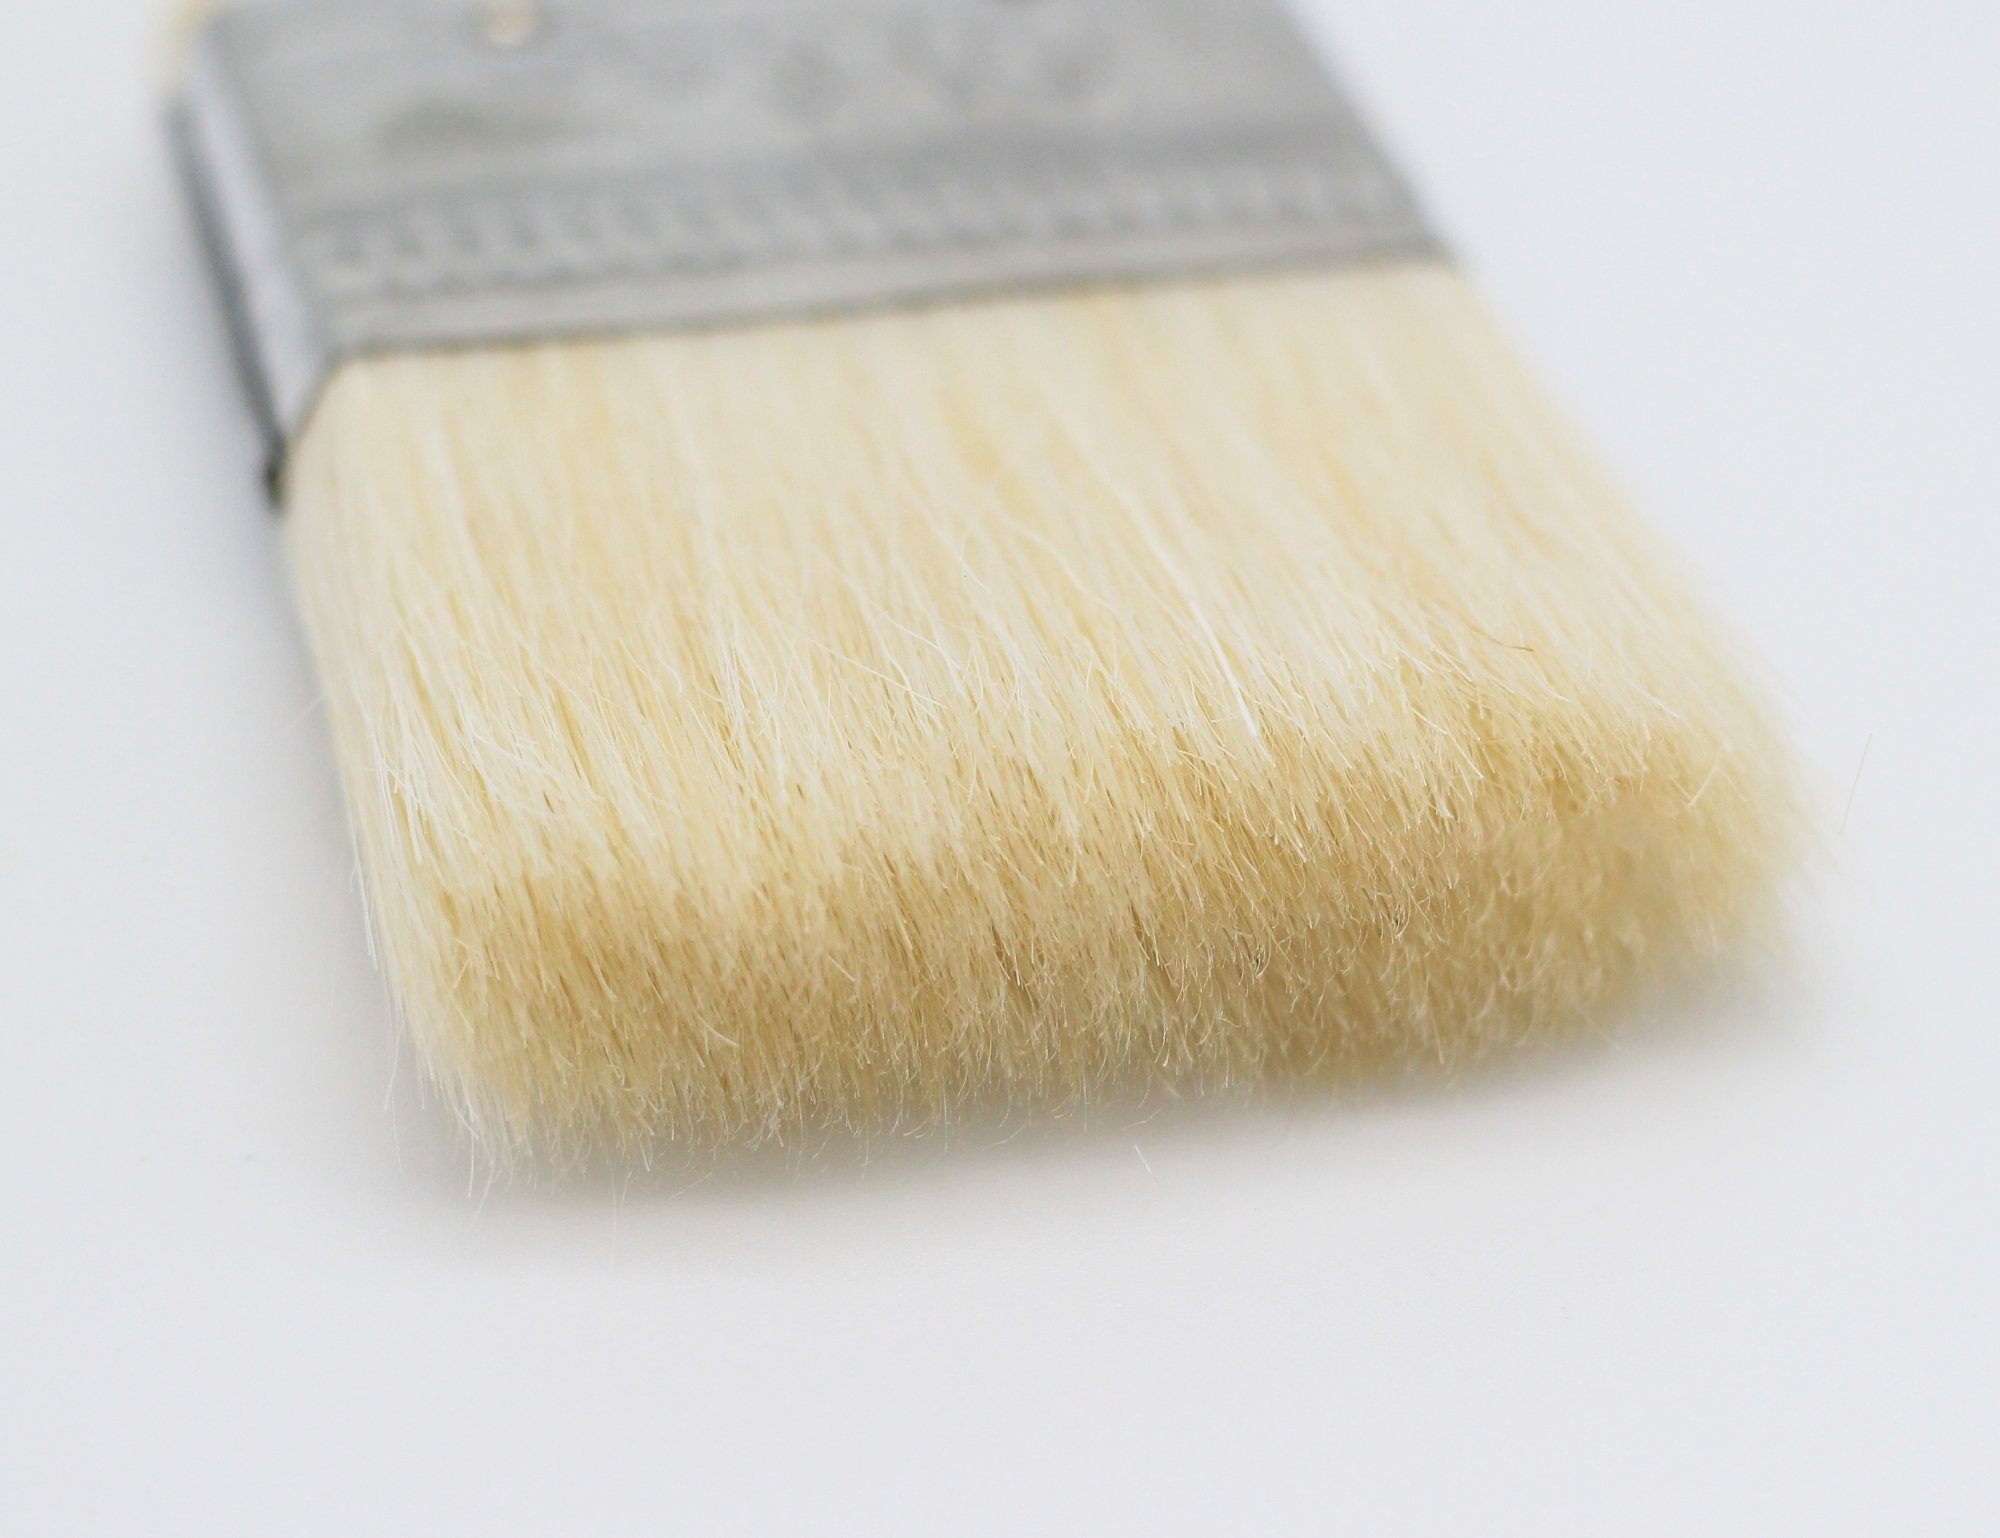 Fiomia Pastry Brush 3 High quality woolen bristle: thick and flexible, safe and eco-friendly, even pasting, beautiful texture, durable Full wooden handle: streamlined design and comfort grip, easy to hang and save space High efficiency: absorbent, save time and effort